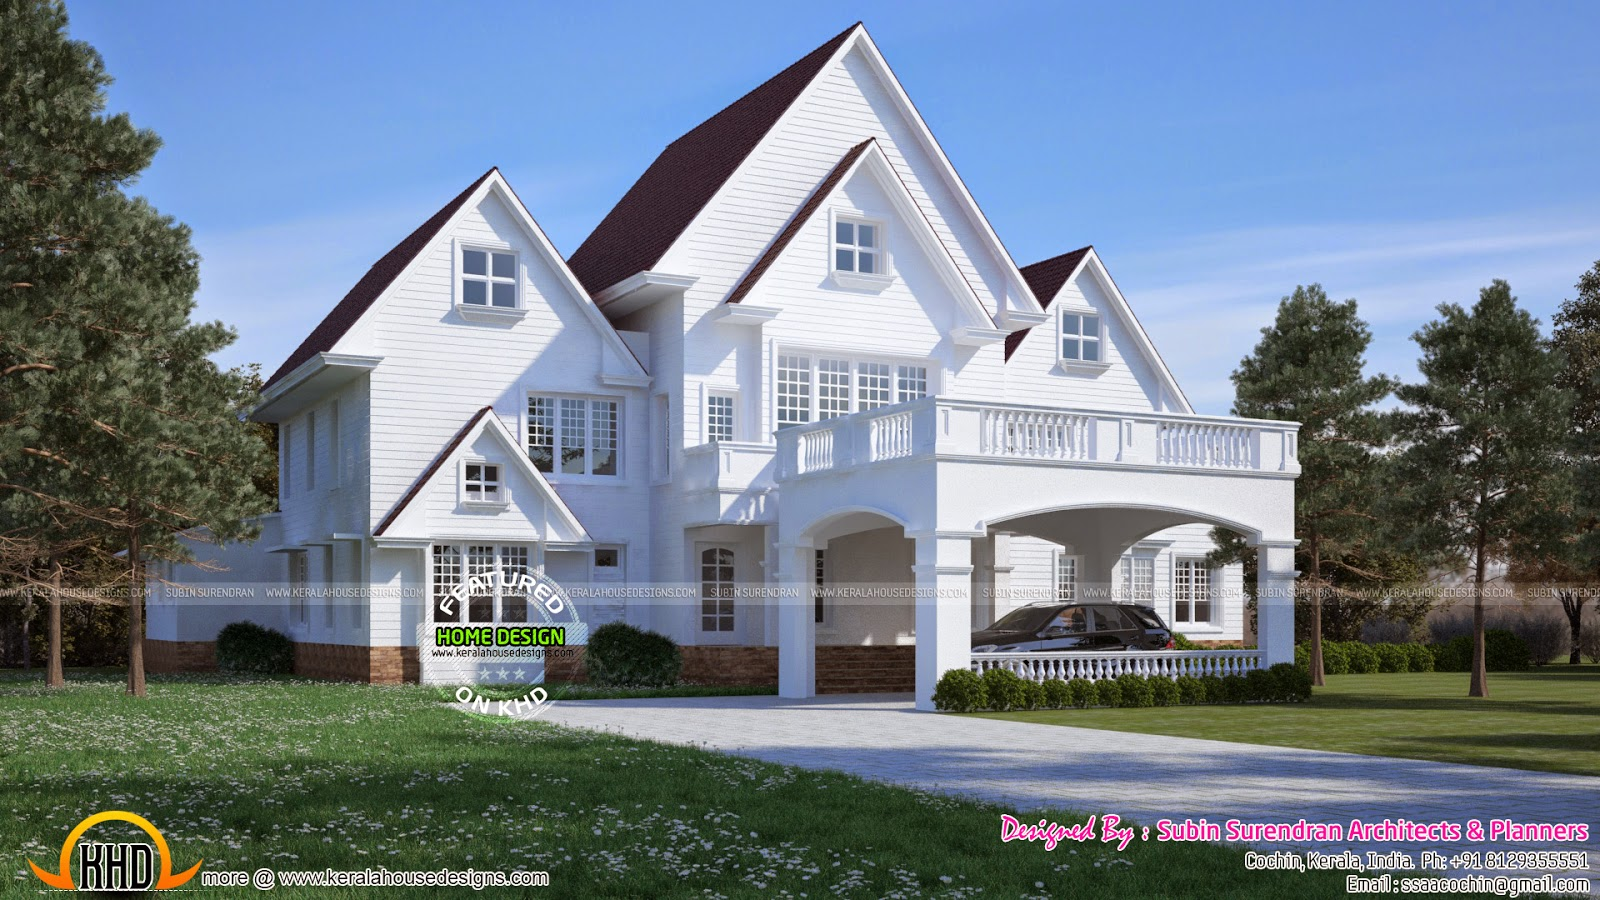 Super luxury 5 bedroom attached american model house for New american style house plans